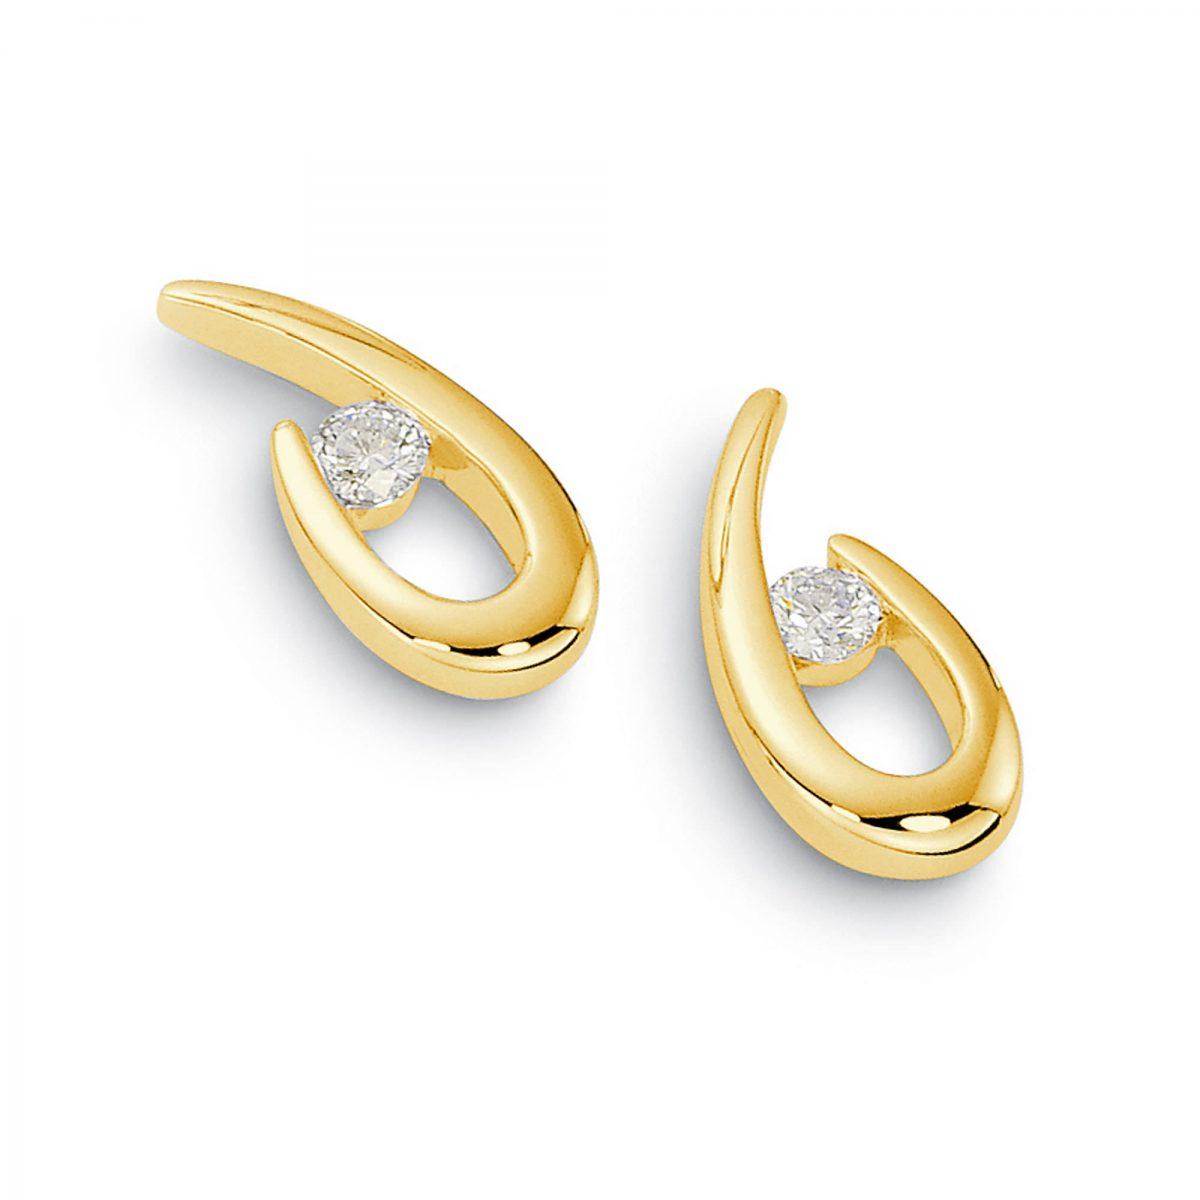 product/y/o/you_re-the-one-stud-earrings-yellow-1.jpg;;product/d/m/dmr-packaging_100.jpg